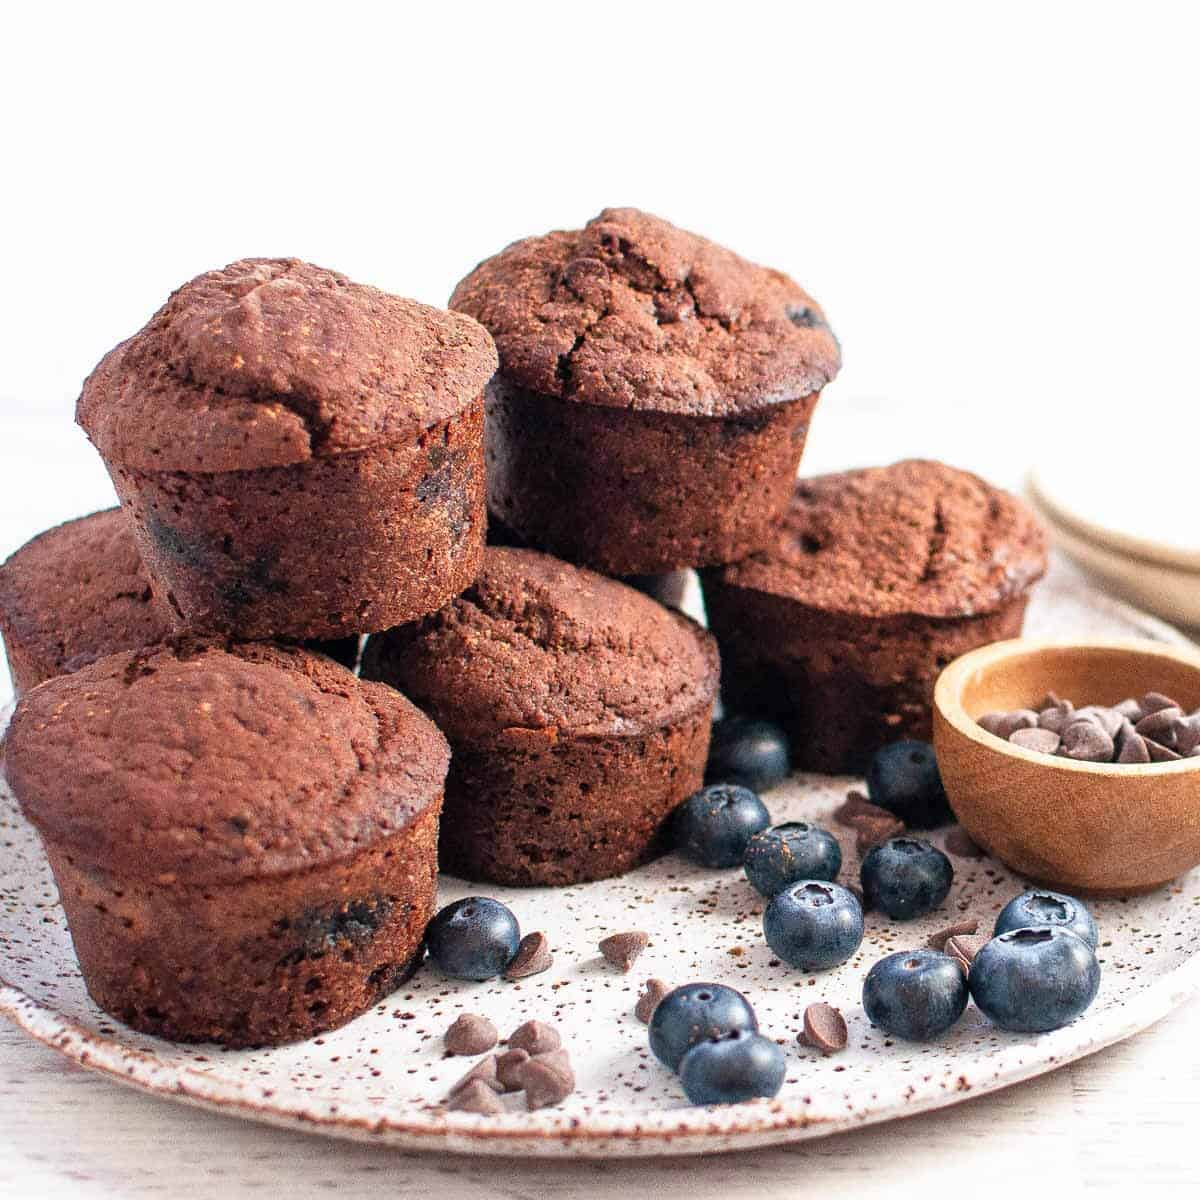 Chocolate blueberry muffins on a plate